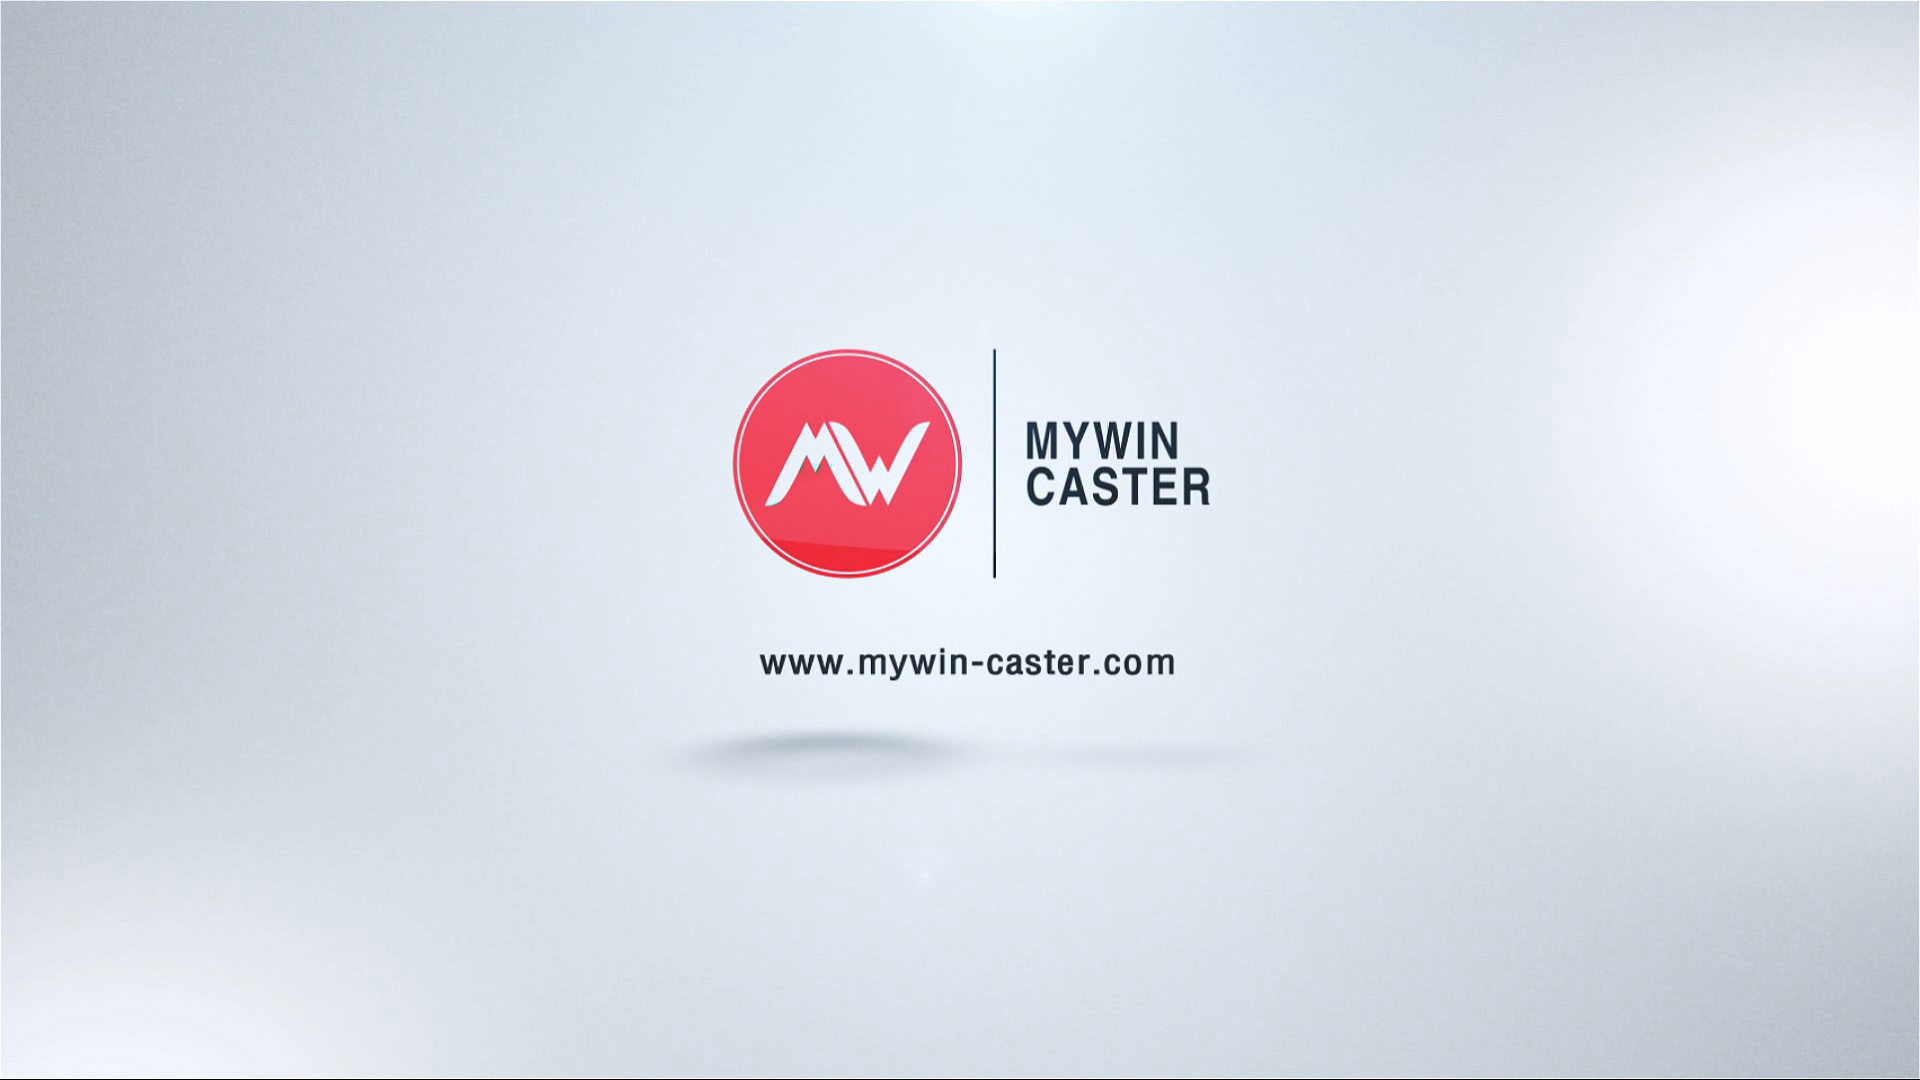 About Mywin Caster